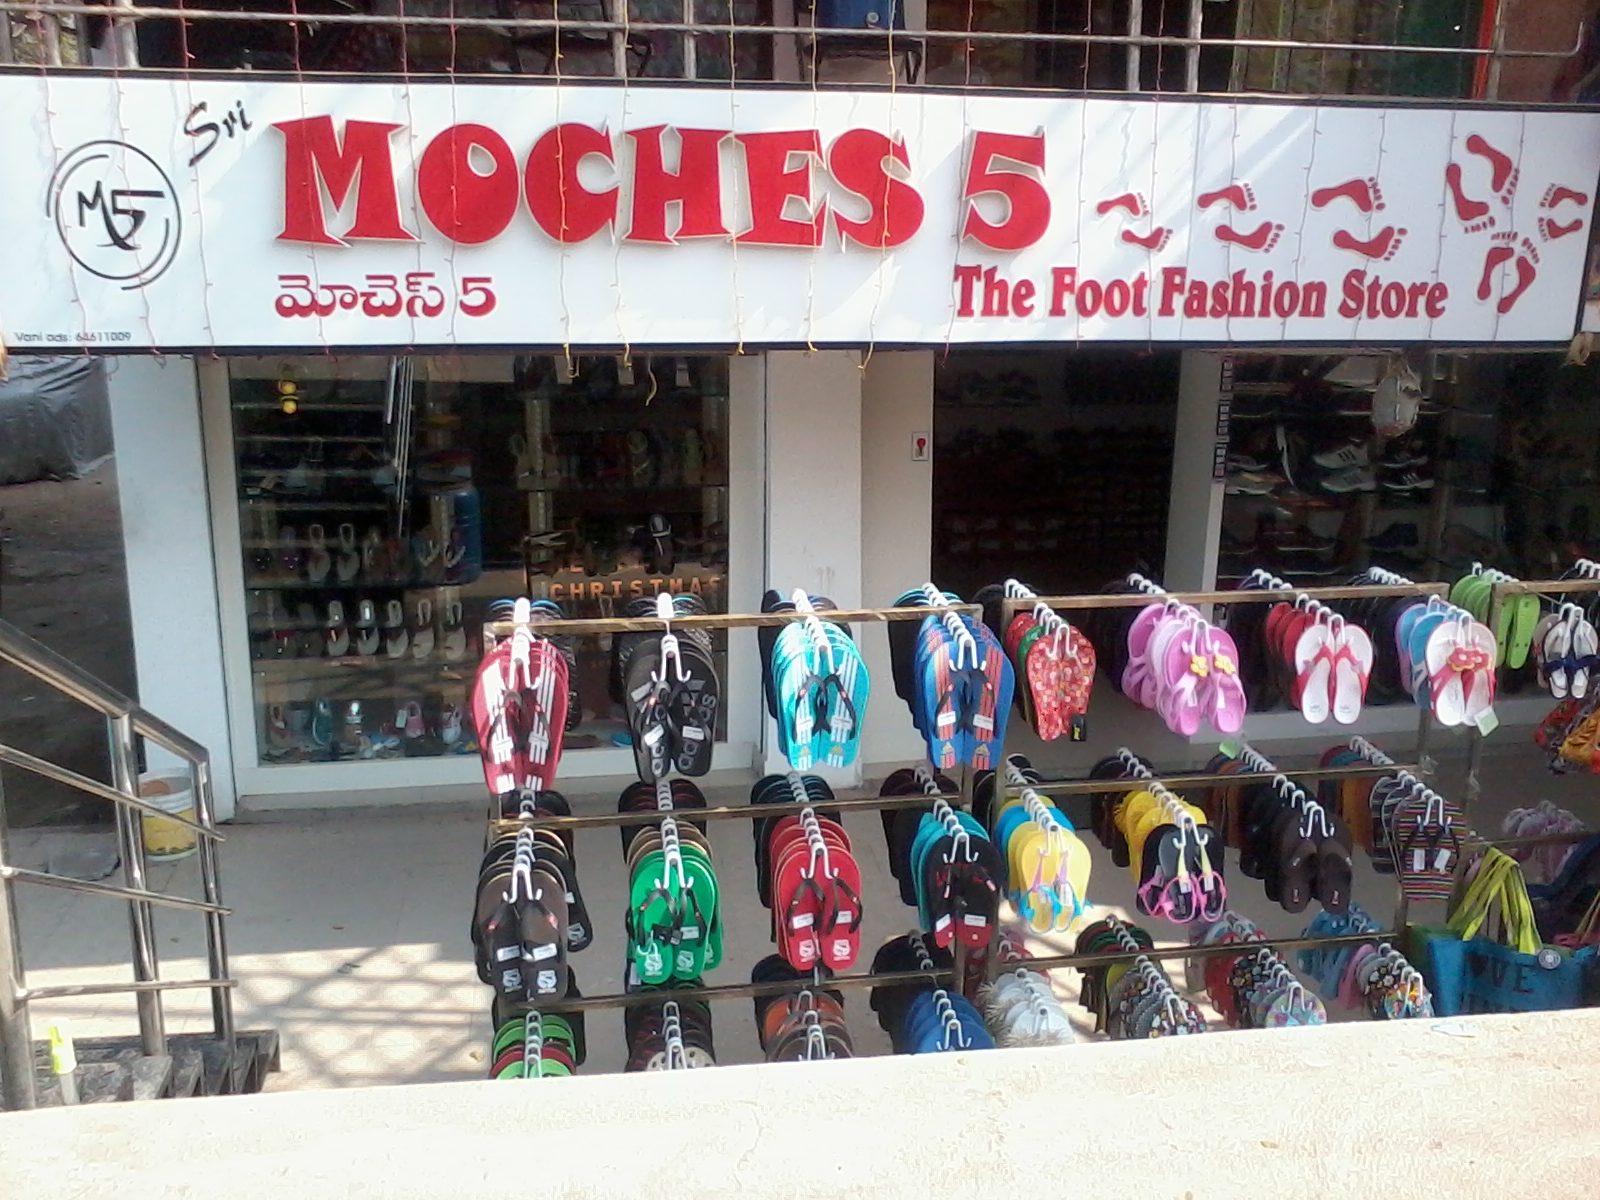 Moches5